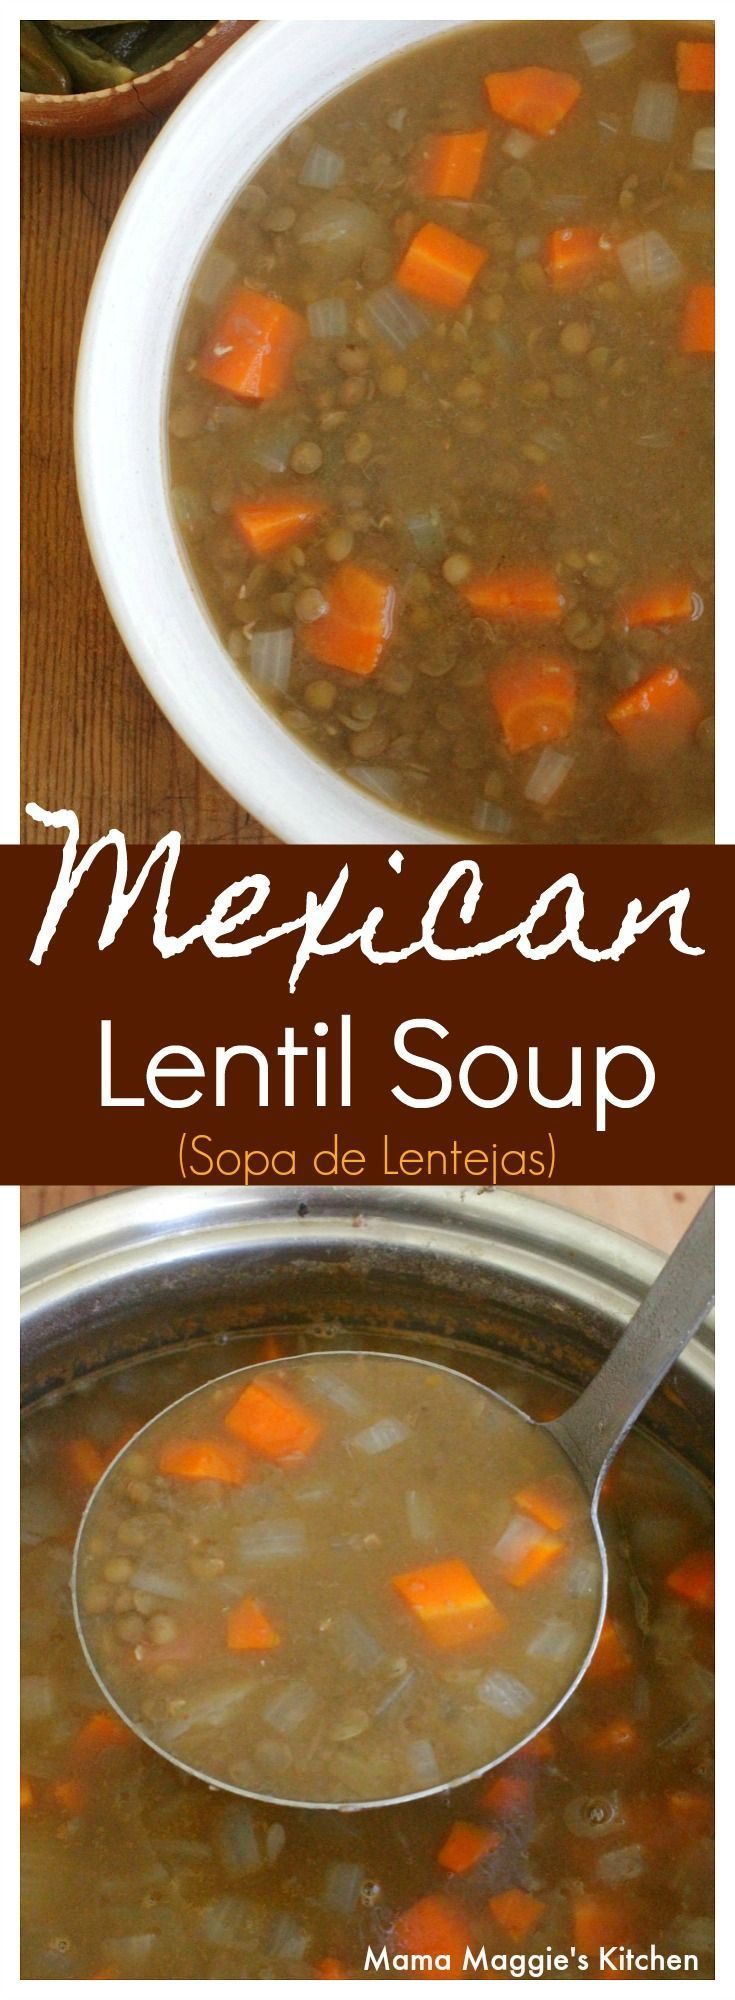 Nothing warms you up like Mexican Lentil Soup, or Sopa de Lentejas. A big bowl of this soup is comforting, satisfying, and always enjoyable. By Mama Maggie's Kitchen via @maggieunz